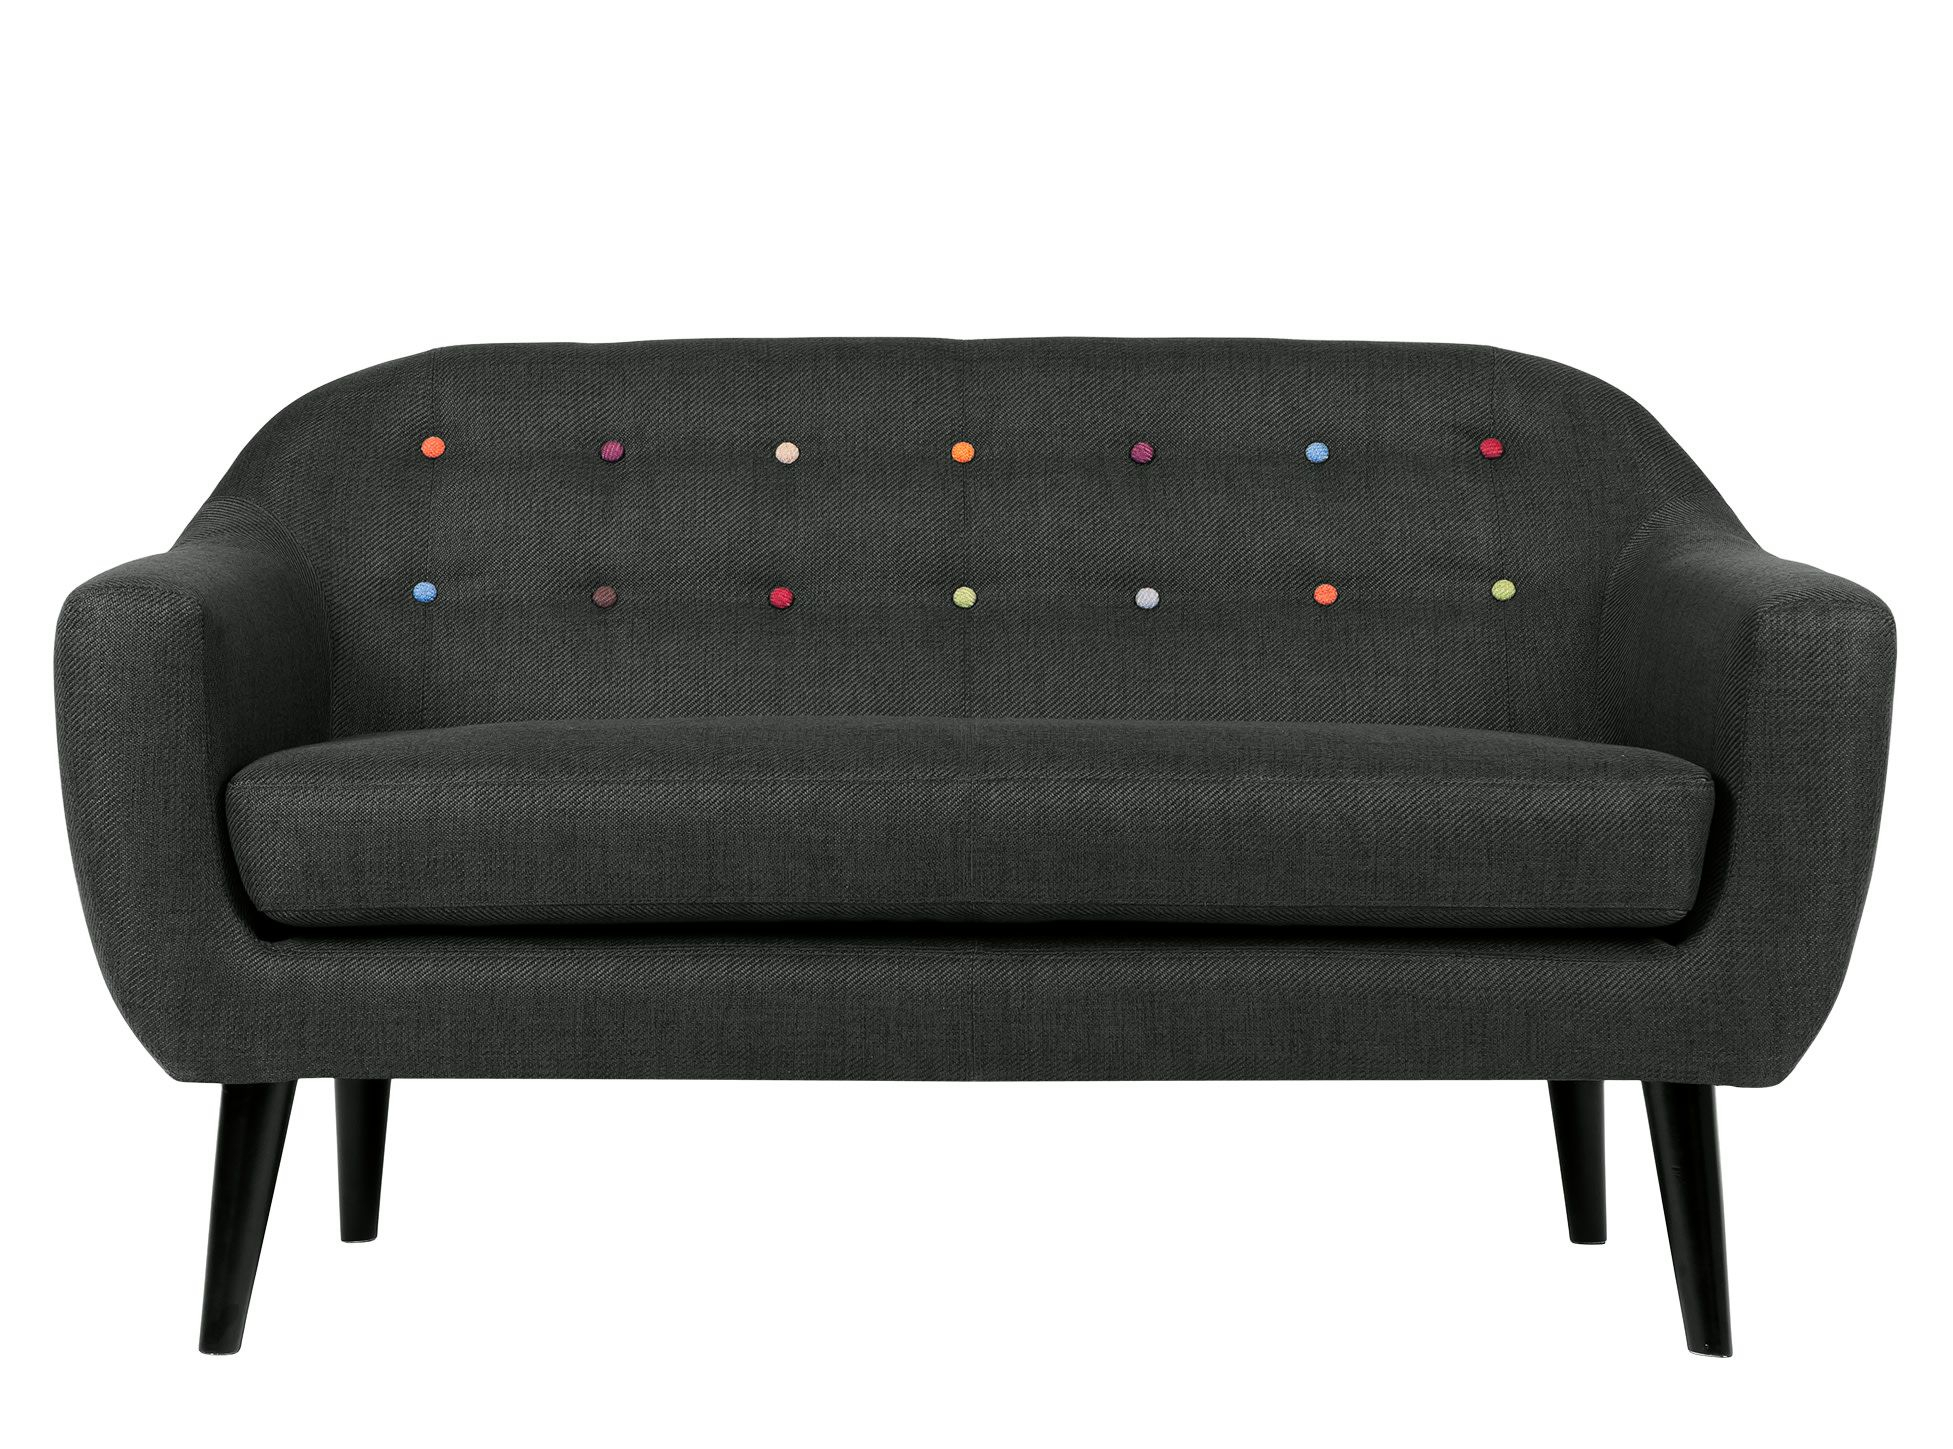 Made 2 Seater Sofa, Anthracite Grey With Rainbow Buttons (Image 5 of 20)